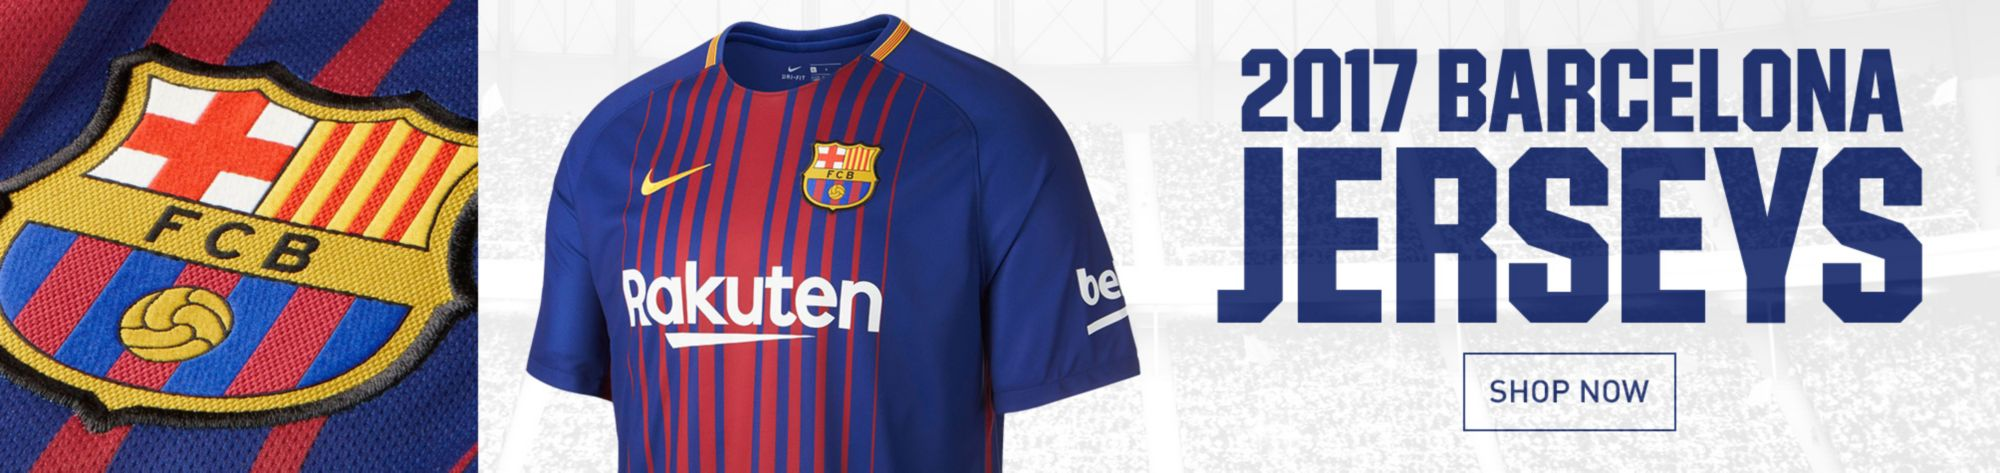 New Barcelona Jerseys